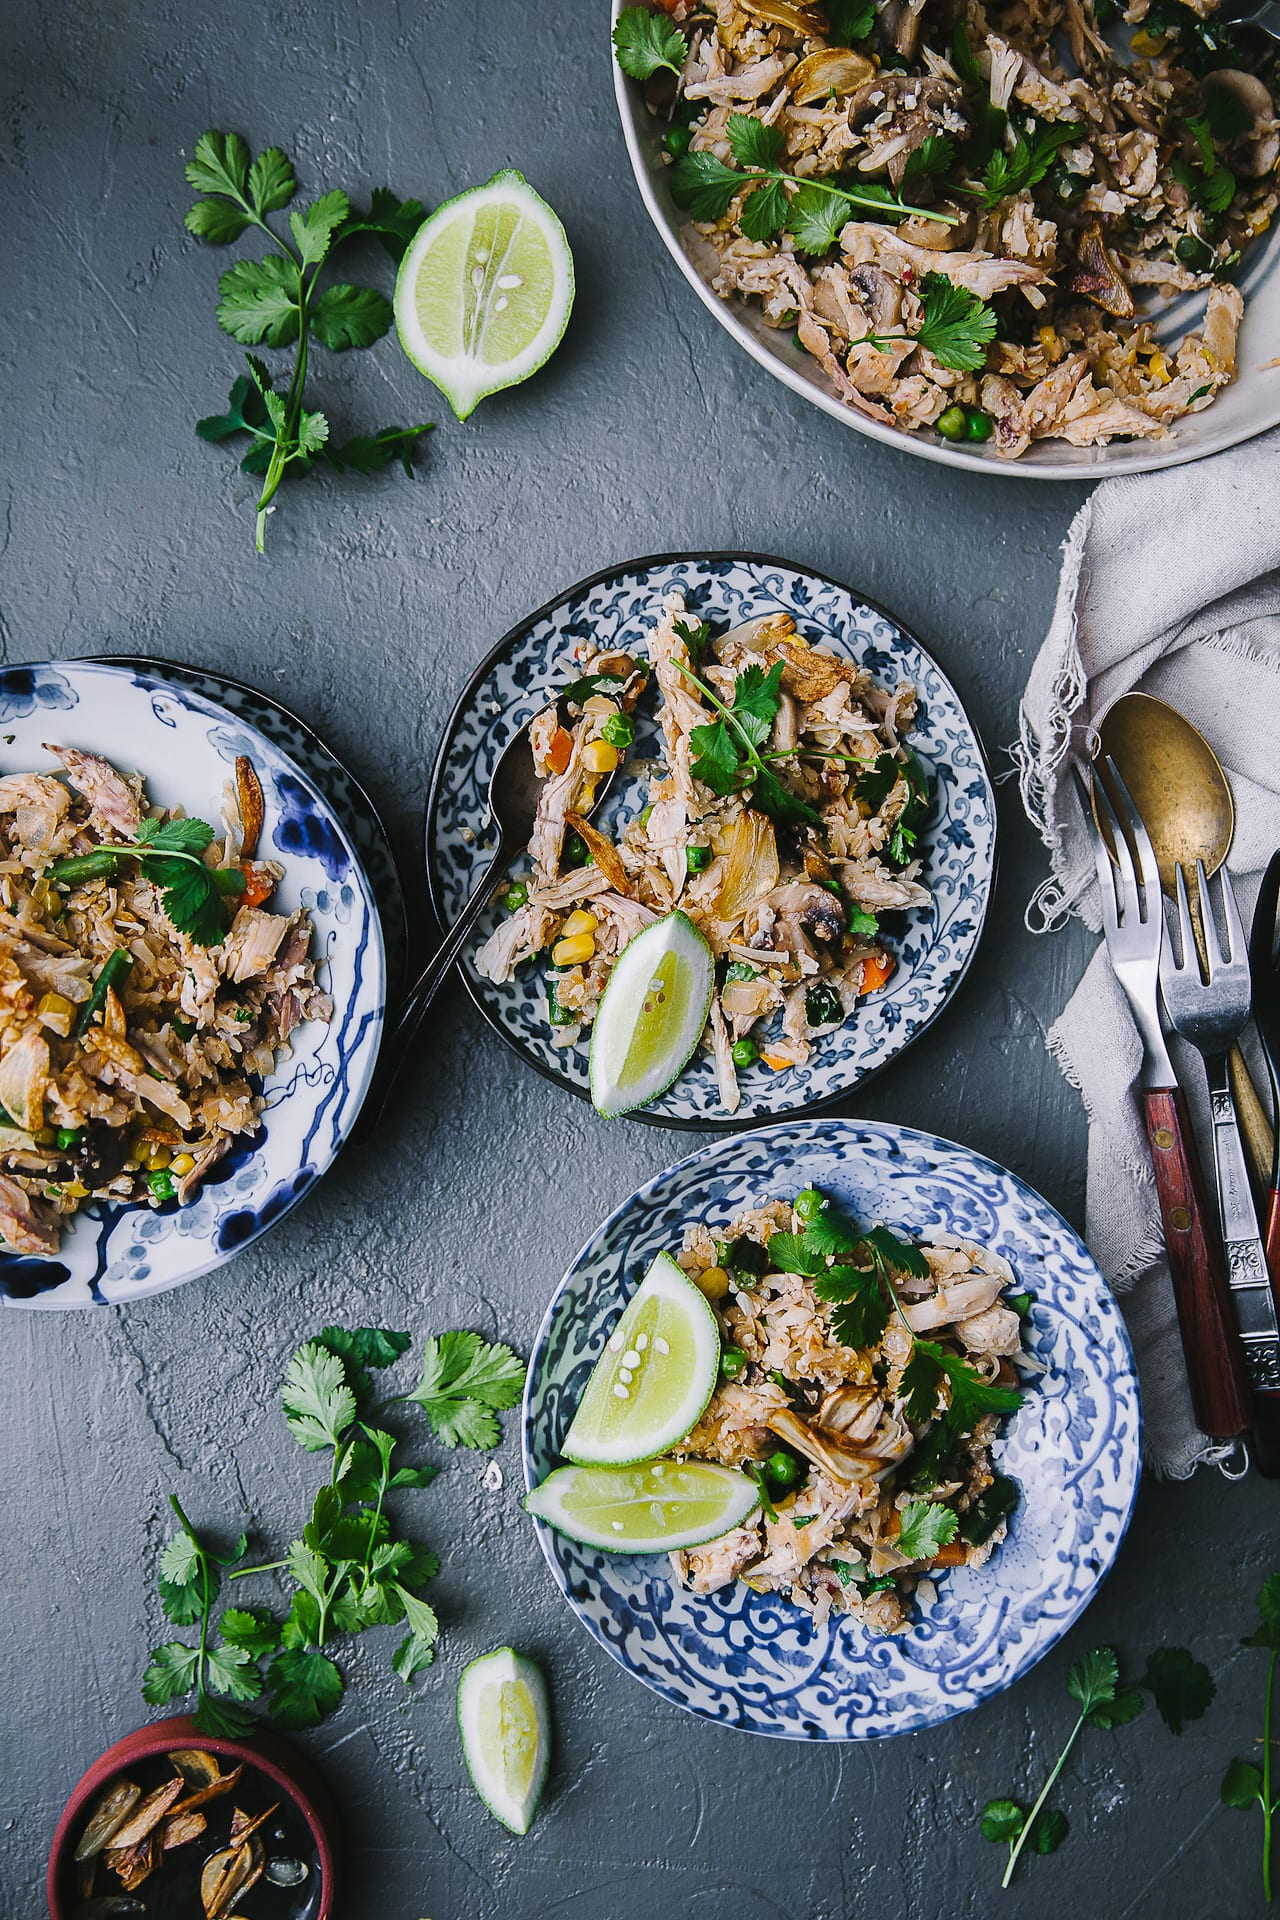 Mushroom Chicken Spiced Cauliflower Fried Rice | Playful Cooking #friedrice #rice #cauliflower #foodphotography #weeknight #keto #glutenfree